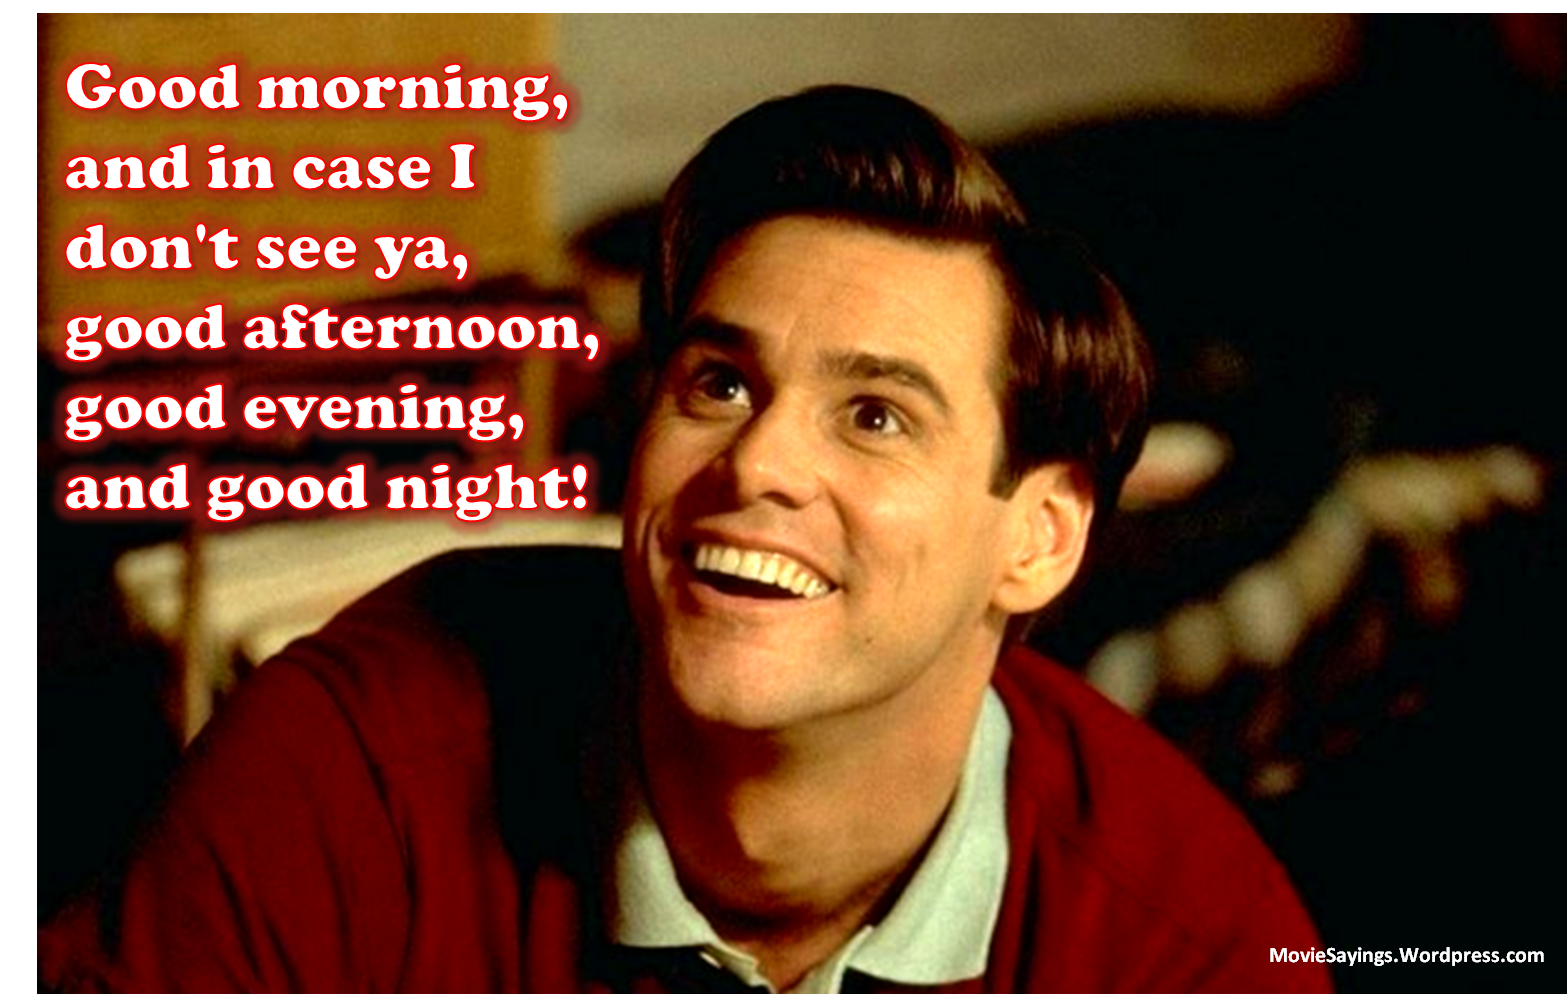 Funny Movie Quotes Truman Good Morning And In Case I Don Movie Quotes Funny Movie Quotes Funniest Quotes Ever